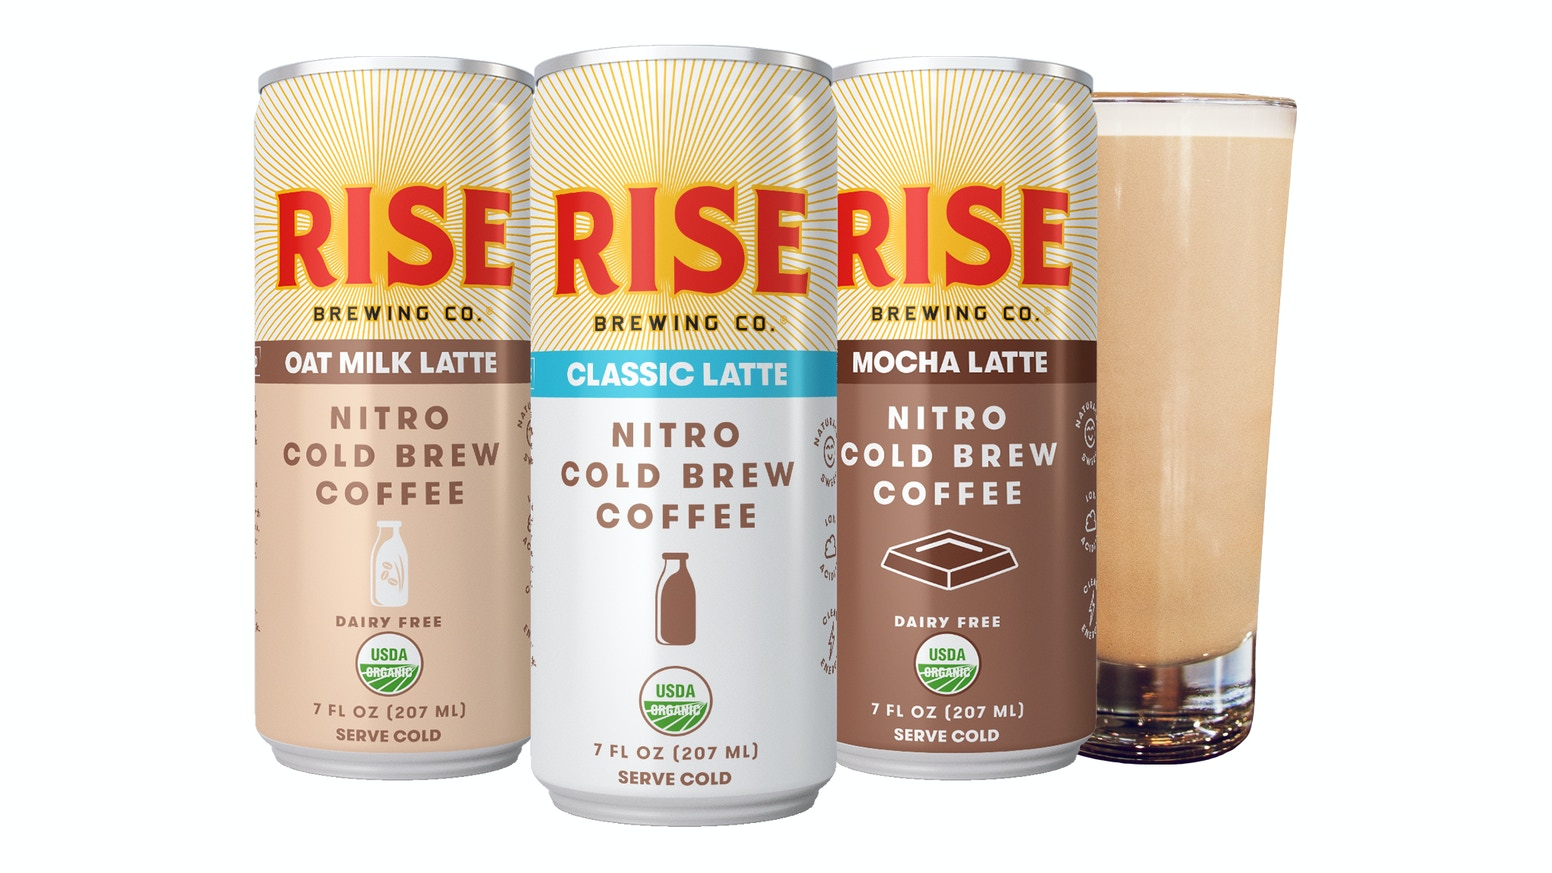 We're a nitro coffee company ready to launch the world's first organic Oat Milk, Classic and Mocha lattes.